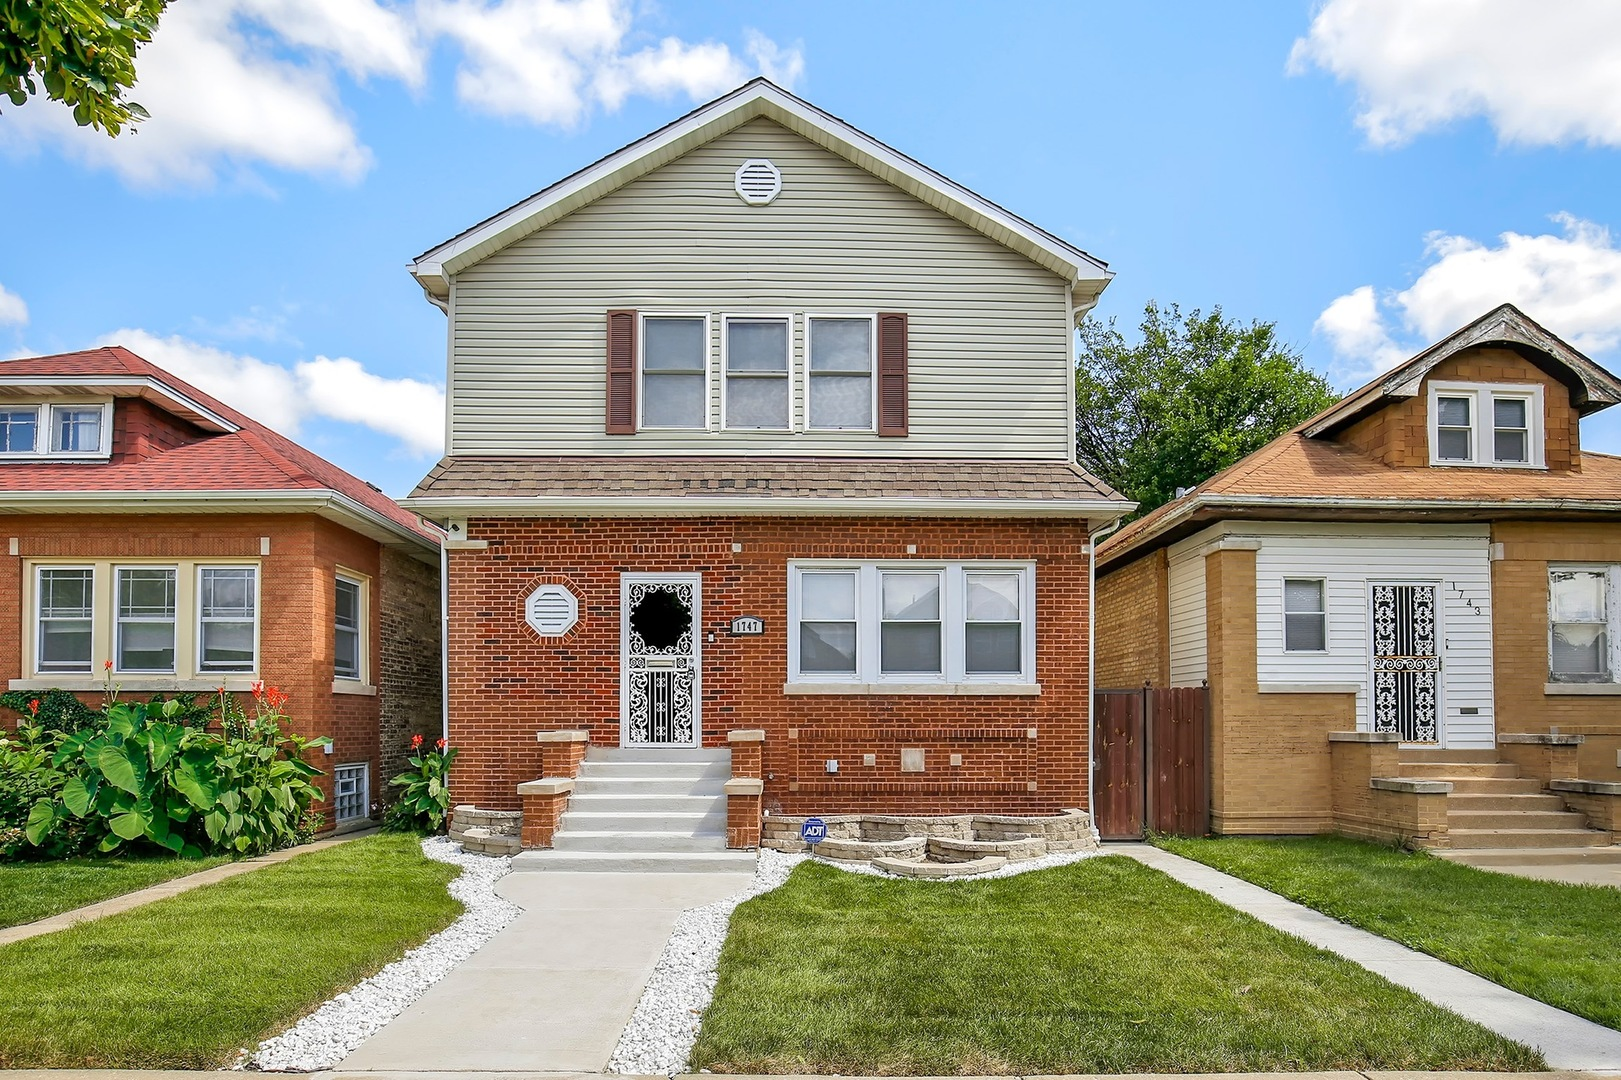 1747 NORTH MOODY AVENUE, CHICAGO, IL 60639